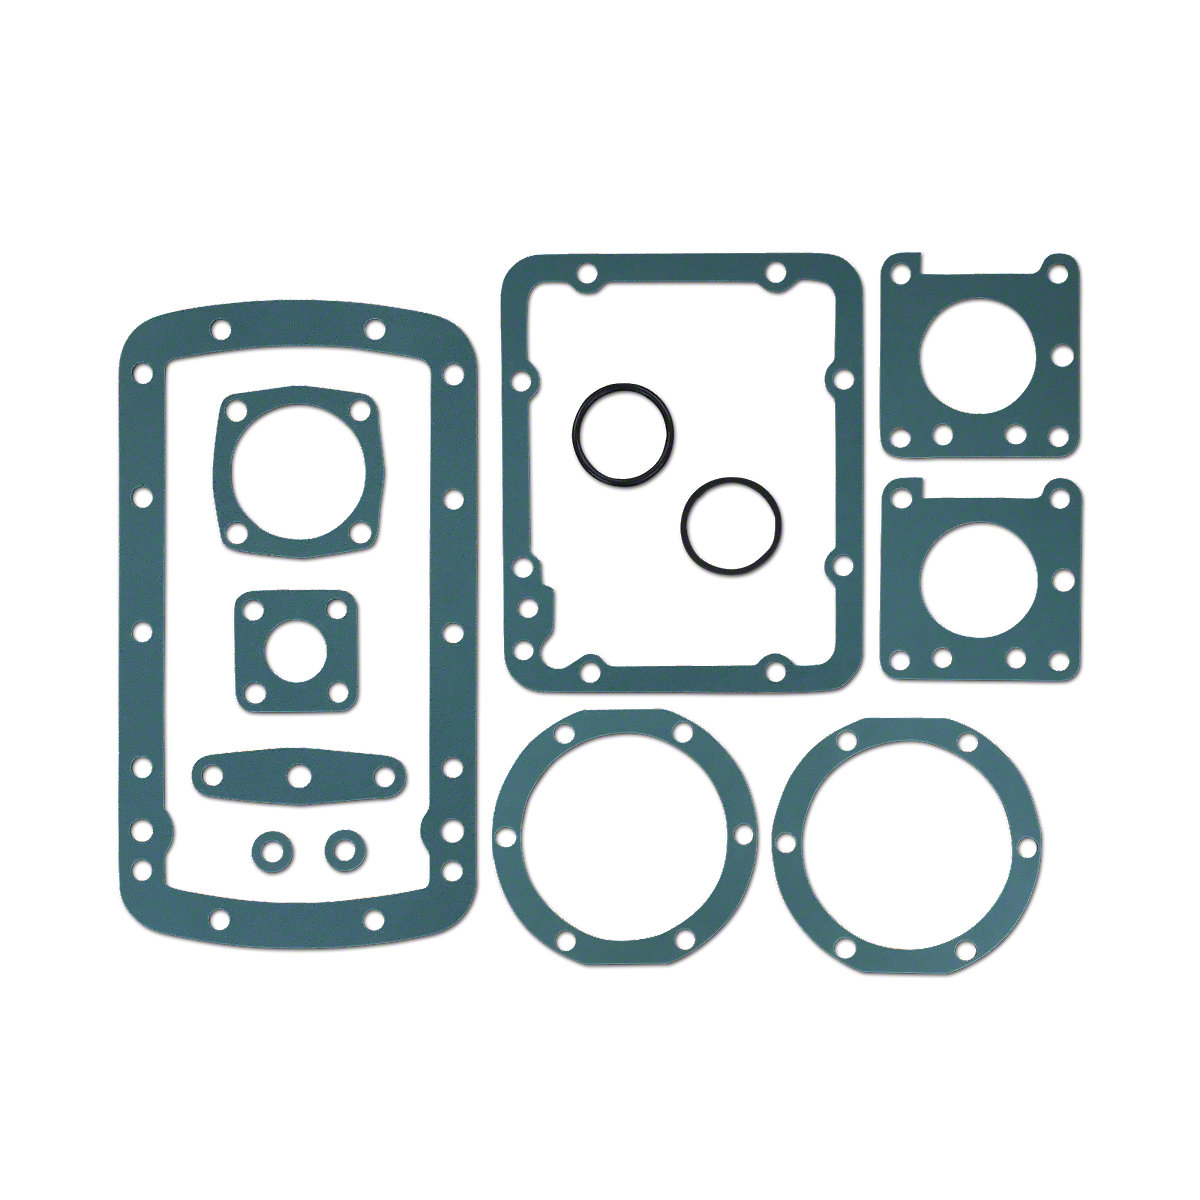 ABC089 Hydraulic Lift Cover Repair Gasket Kit